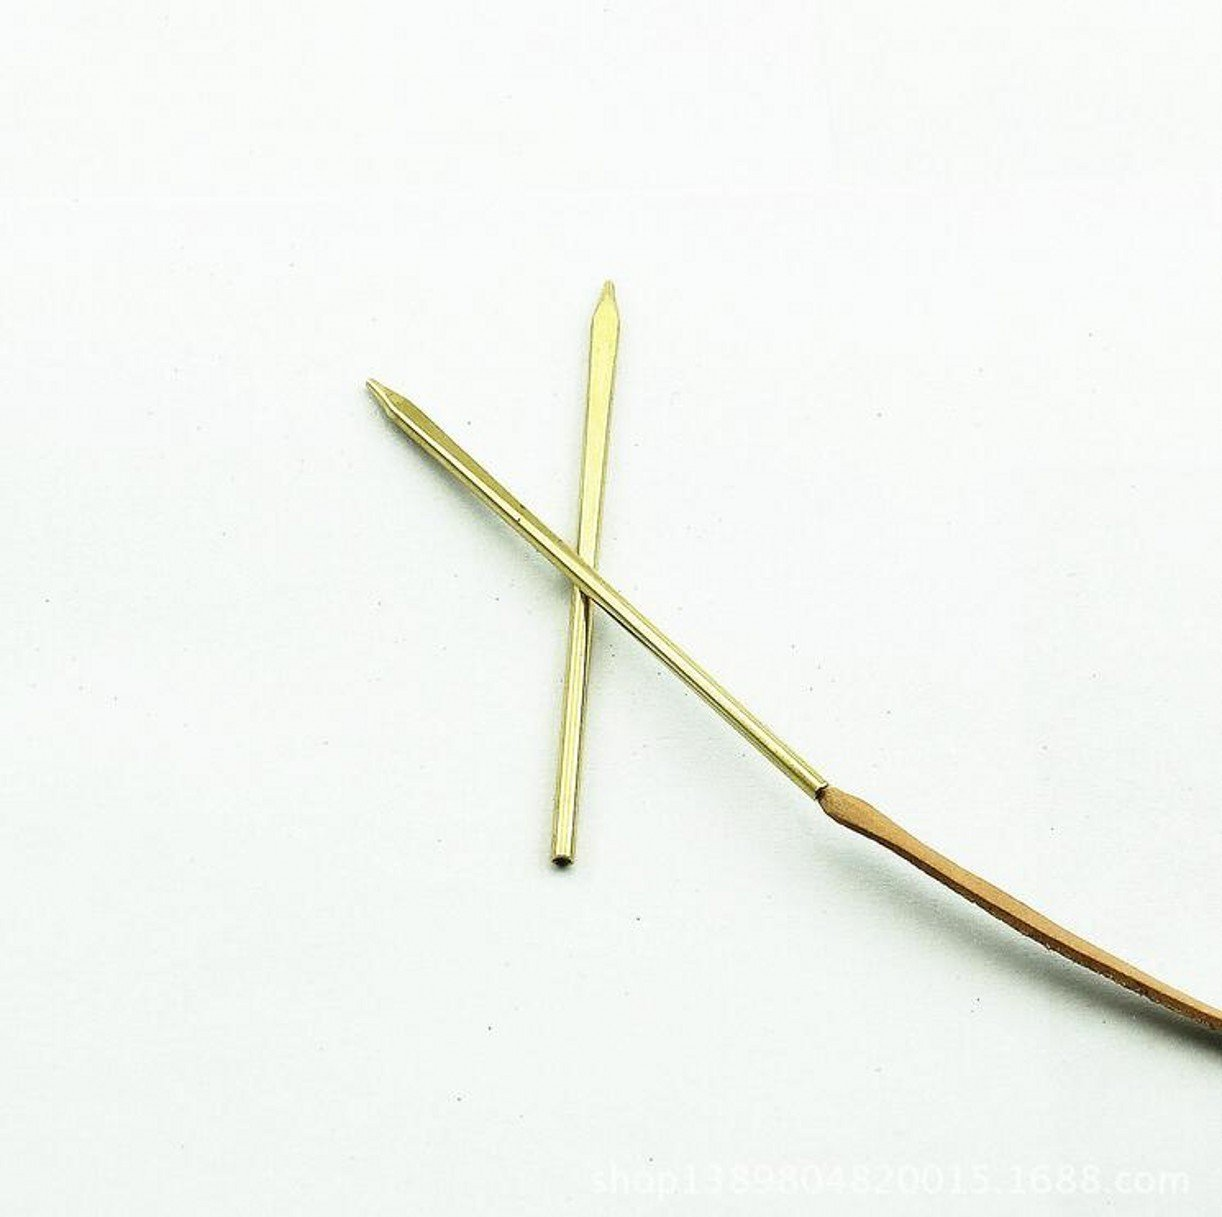 ZHONGJIUYUAN 2 Piece DIY Wallet/Leather Craft Brass Round Oblate Head Threaded Lacing Needle Tool 2MM S0683H Perma-lok Leather Lace Needle